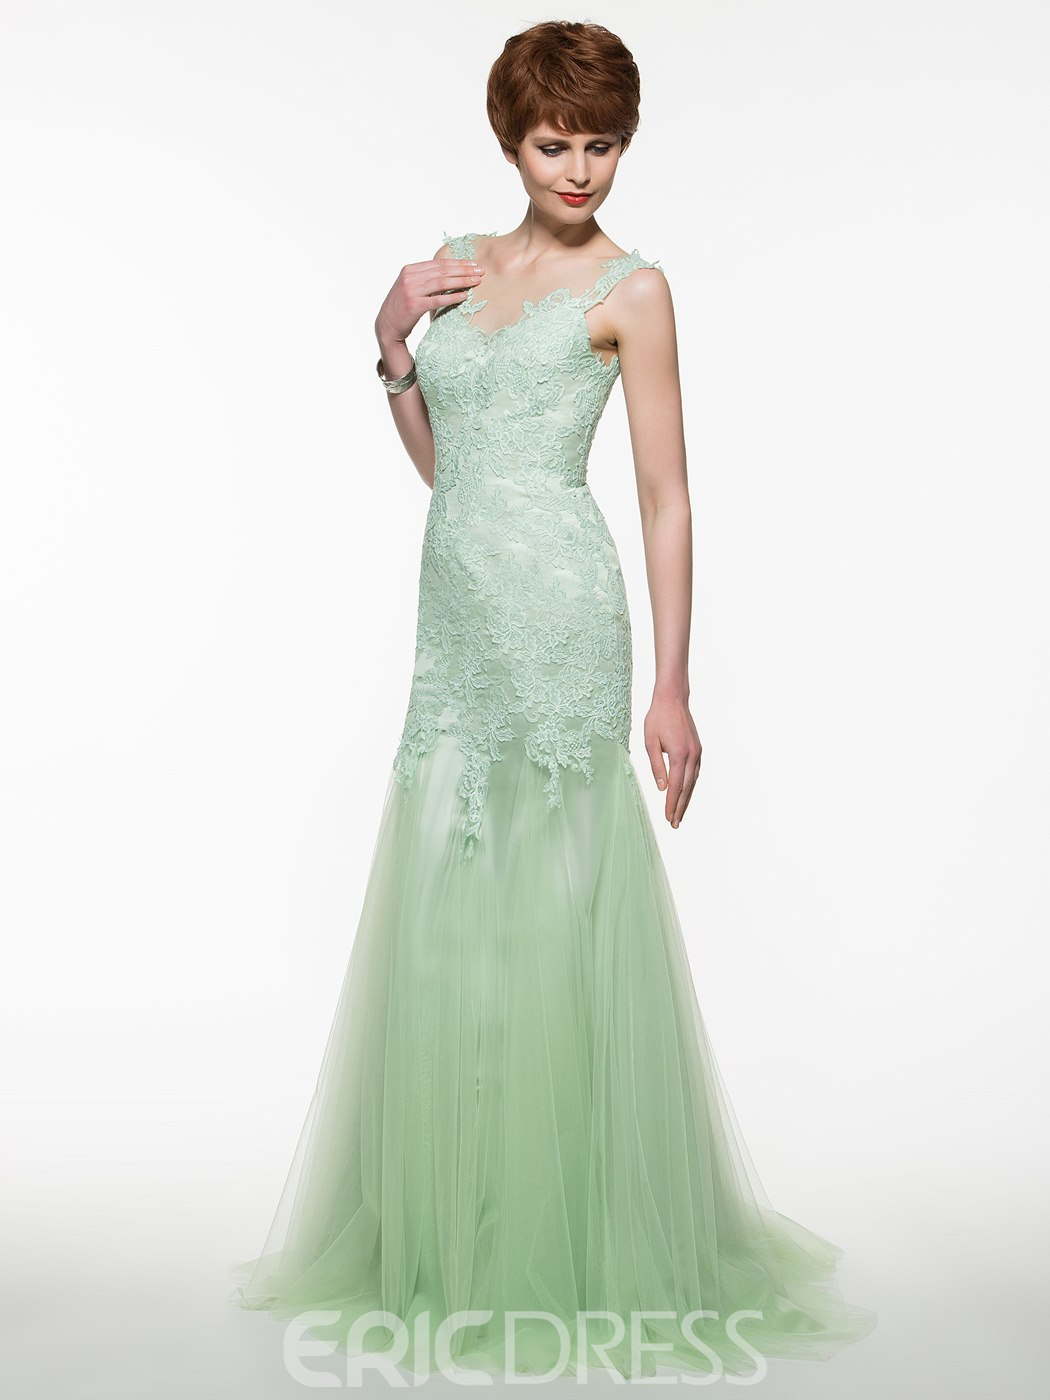 Ericdress Charming Scoop Appliques Mermaid Long Mother Of The Bride Dress